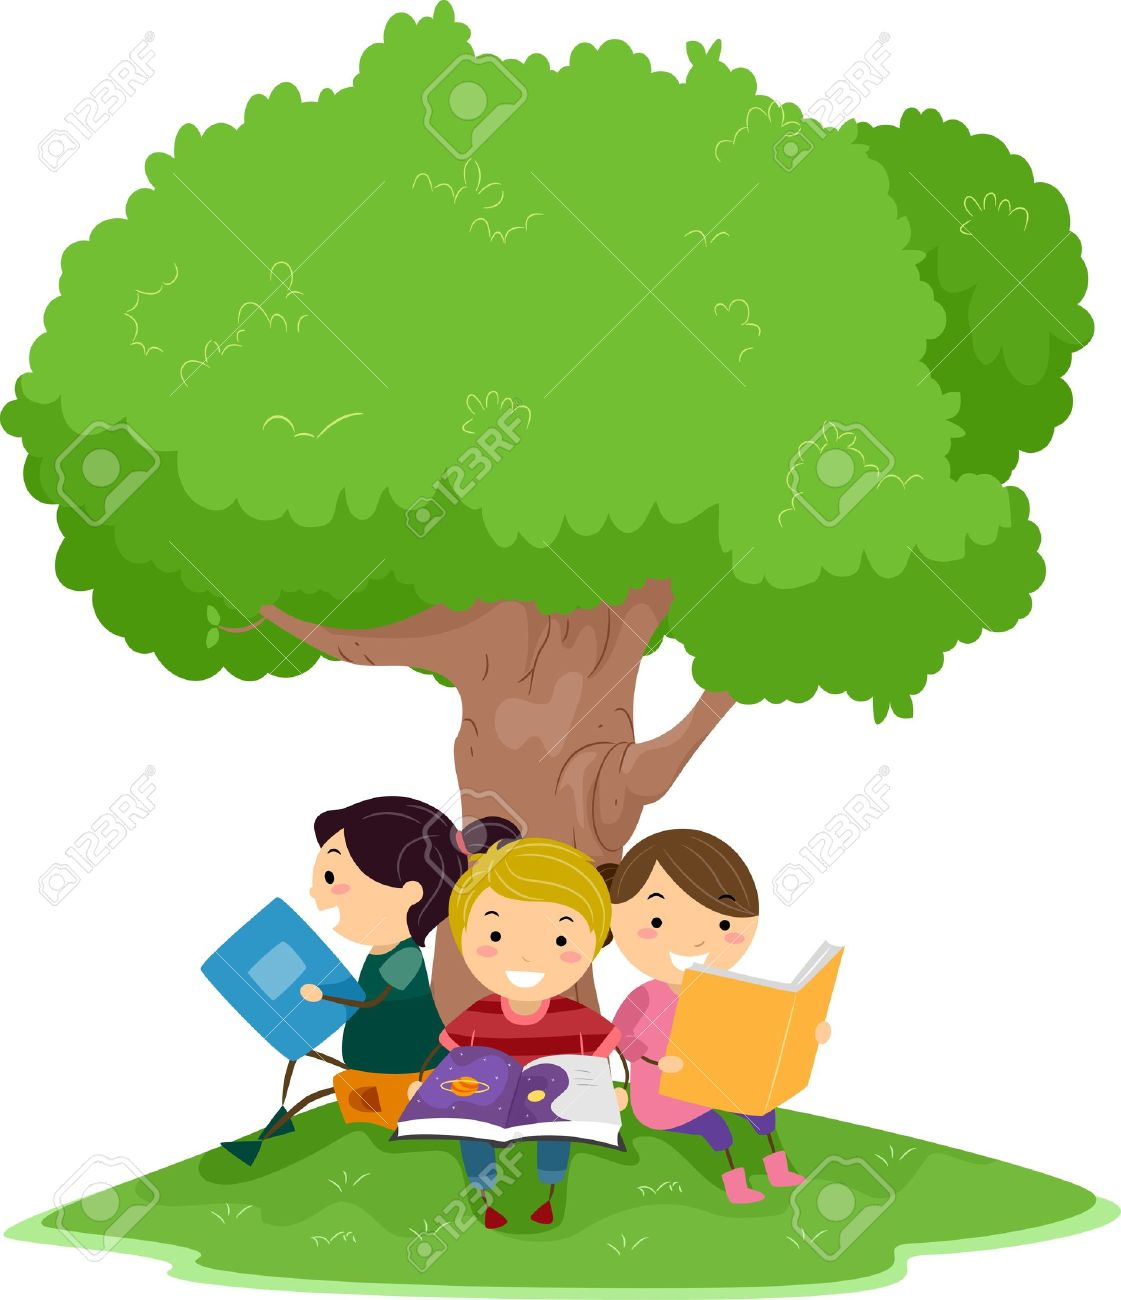 illustration of kids reading under a tree stock photo picture and